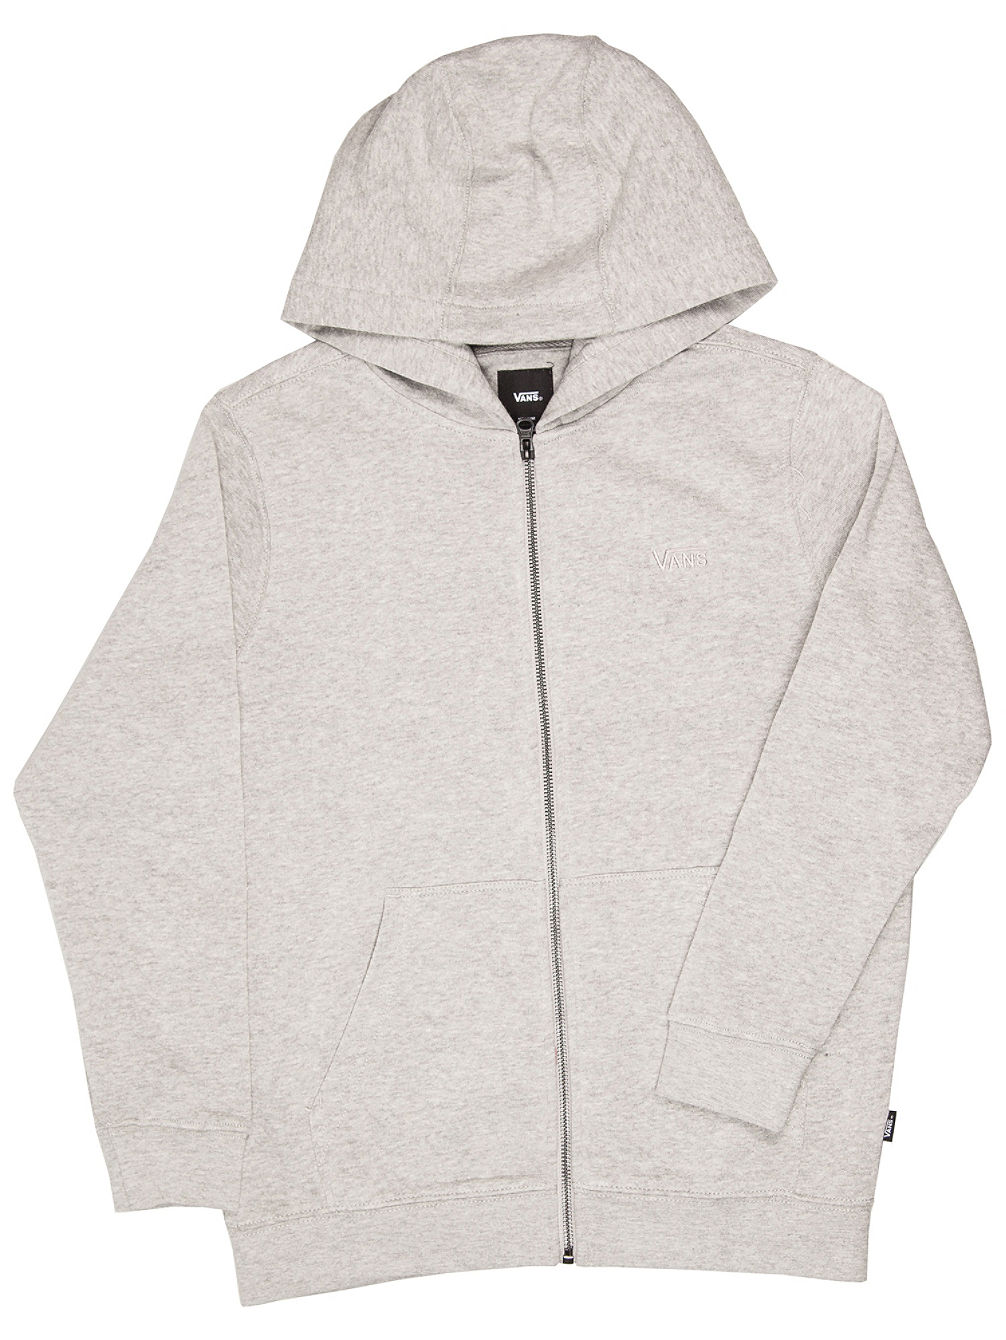 fedb9a9671679f Buy Vans Core Basic Zip Hoodie IV online at Blue Tomato